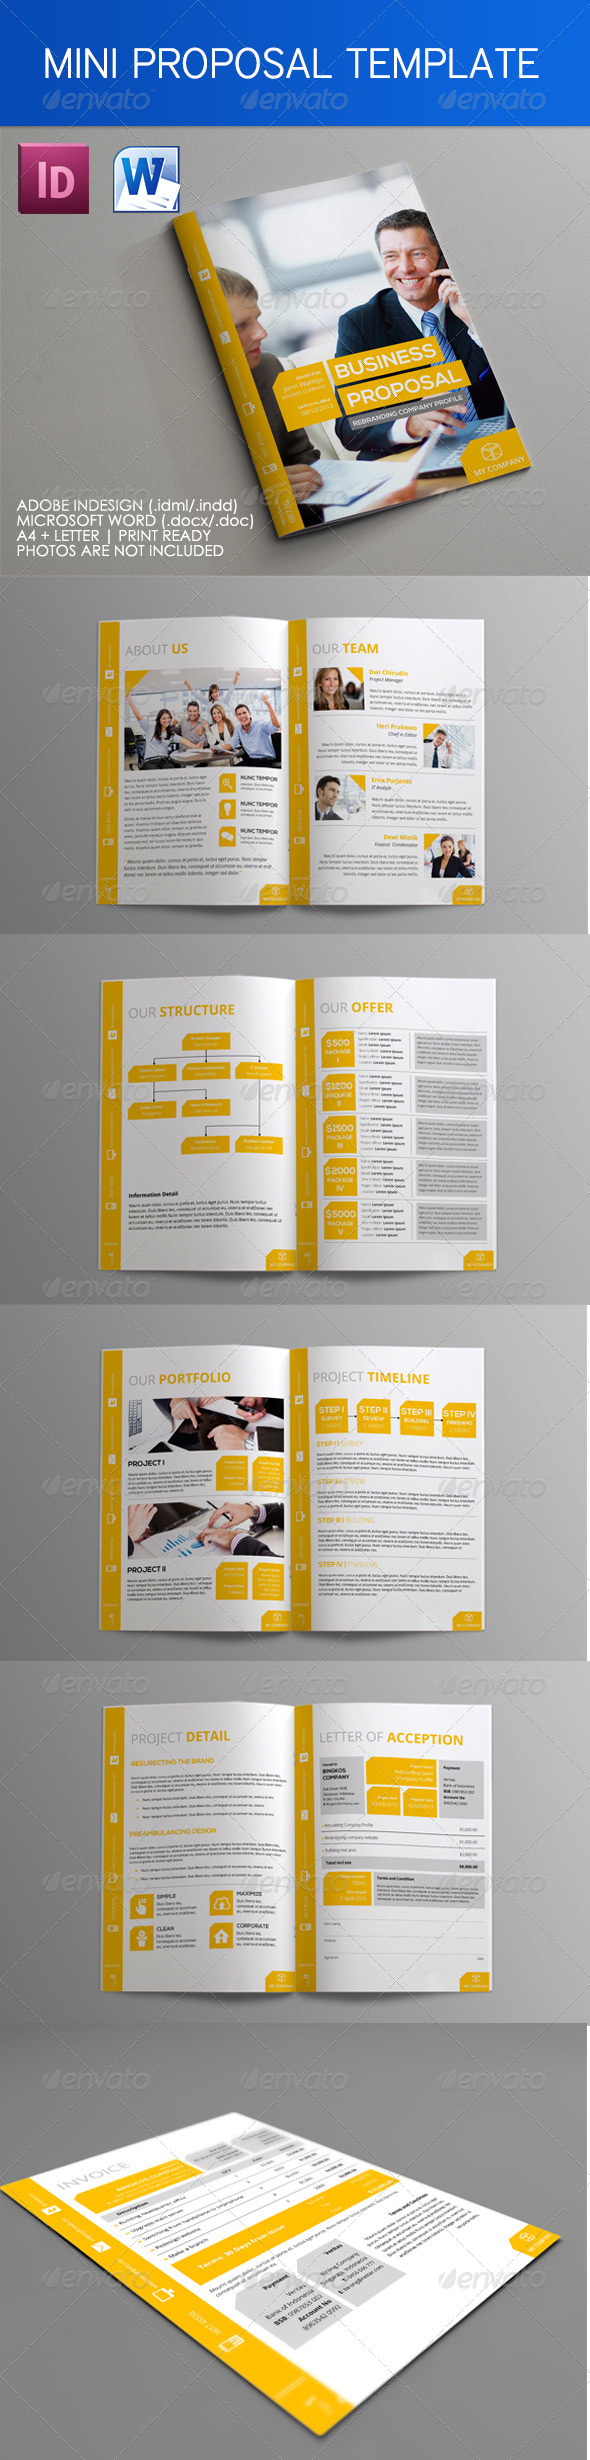 GraphicRiver Mini Proposal Template 4719114